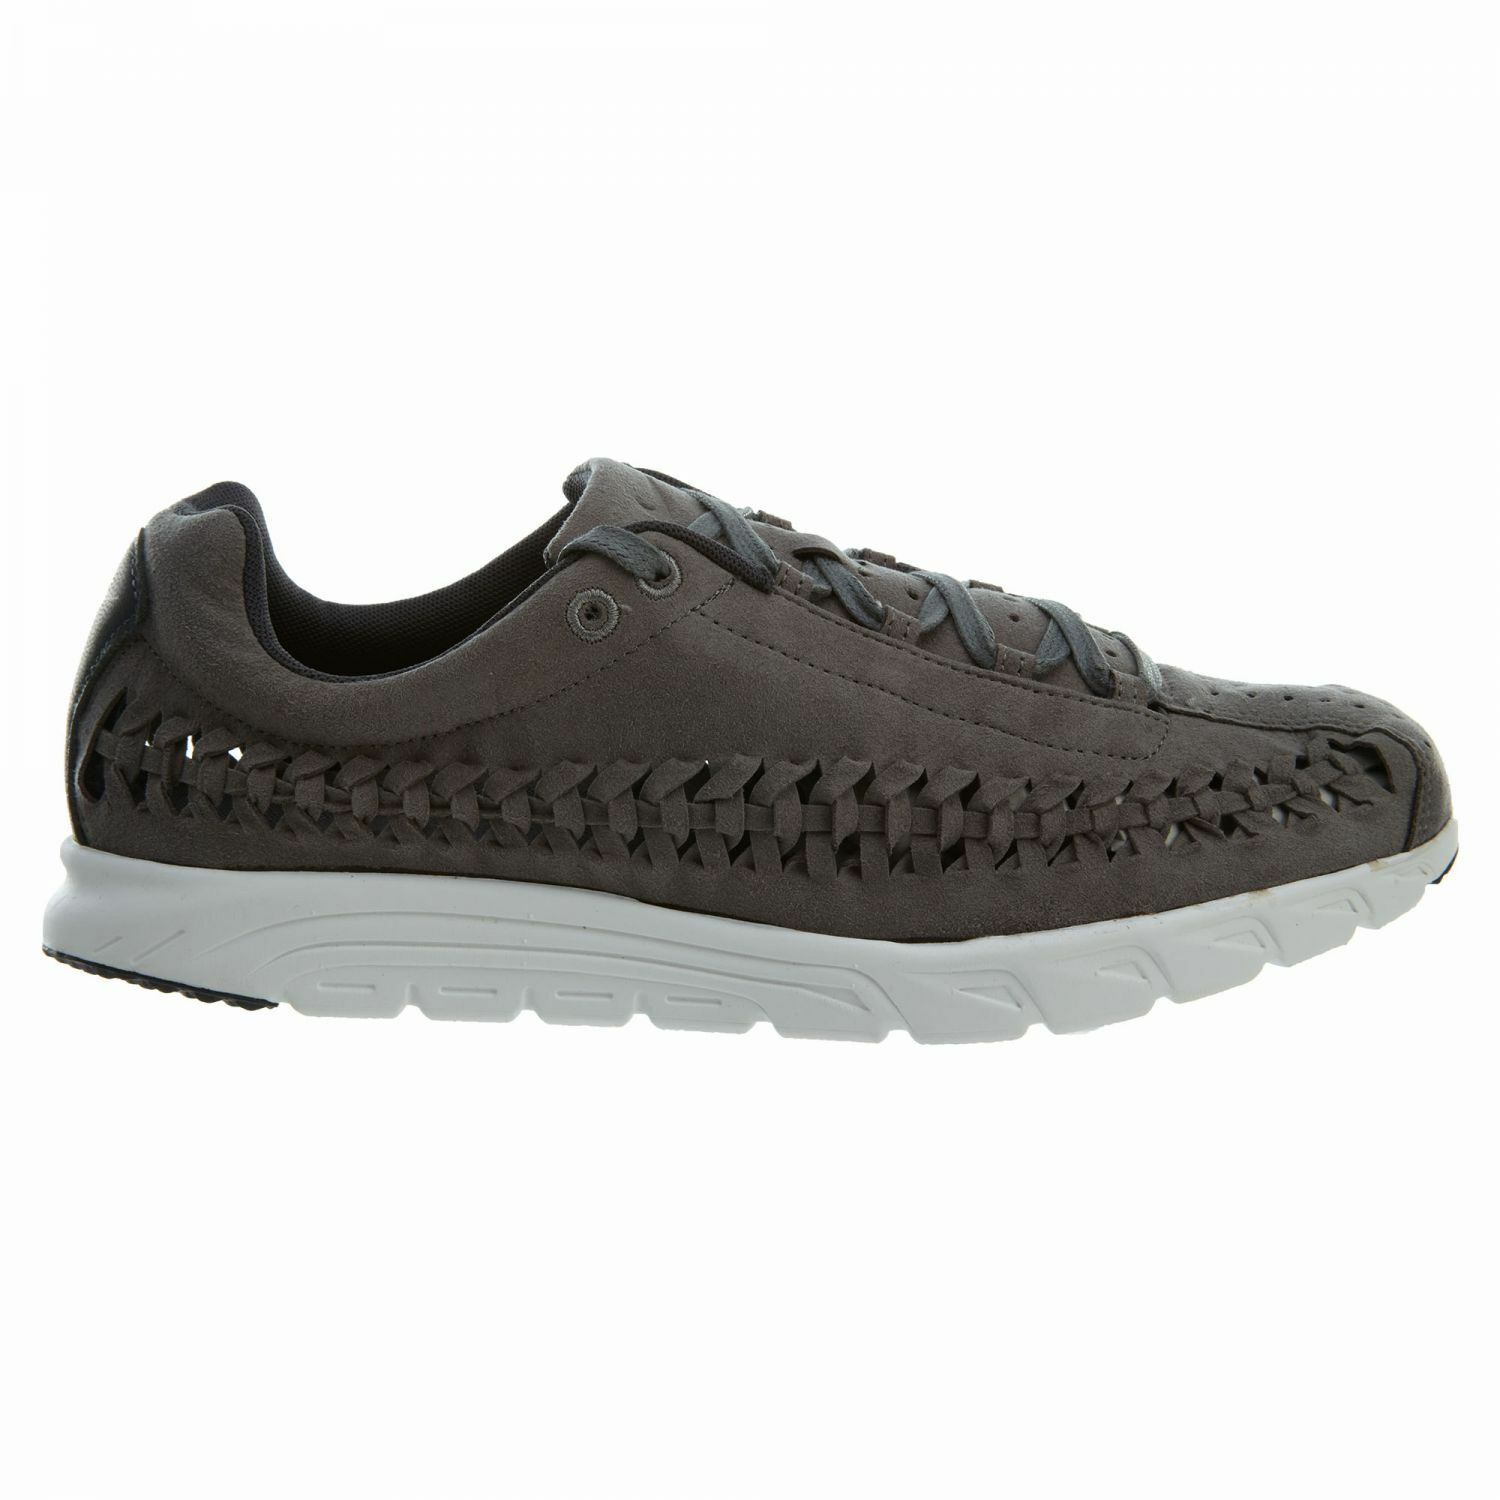 Nike Mayfly Woven Mens 833132-002 Tumbled Grey White Athletic Shoes Comfortable best-selling model of the brand